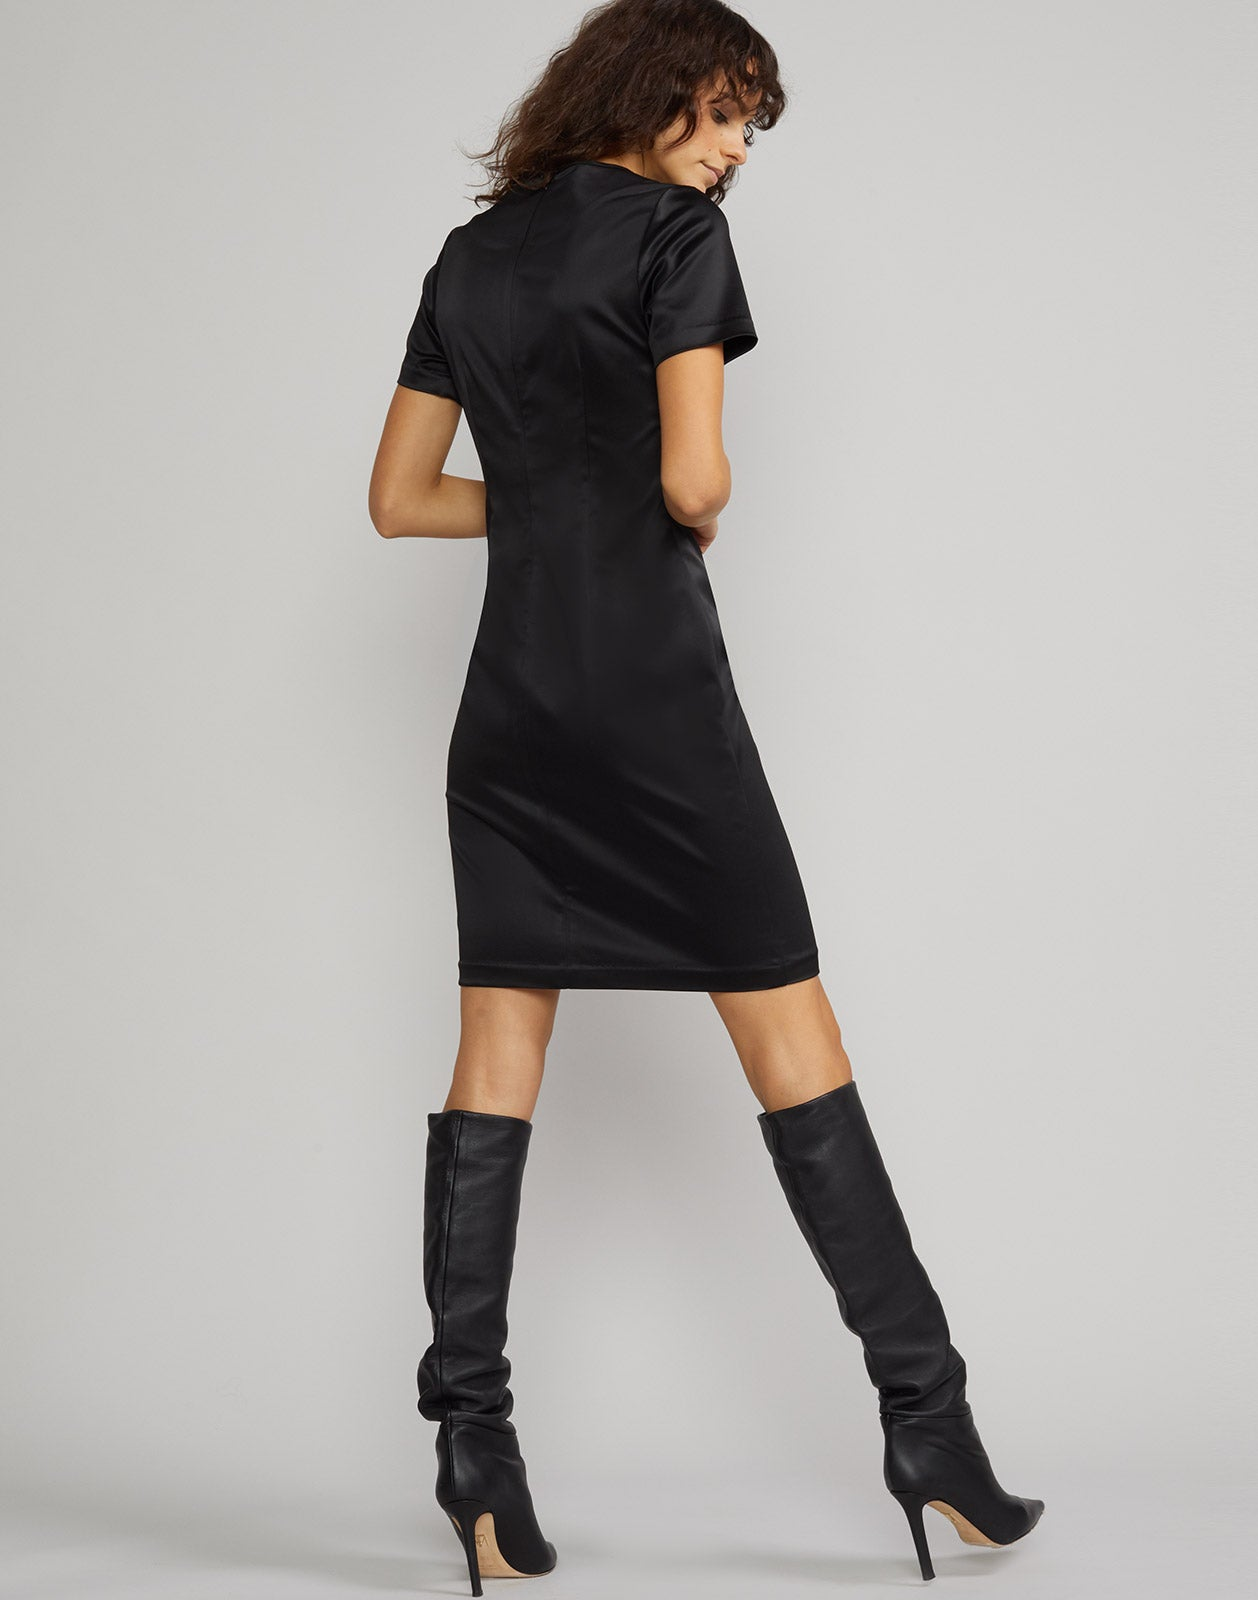 Back view of model wearing Lake Shore stretch satin t-shirt dress in black.